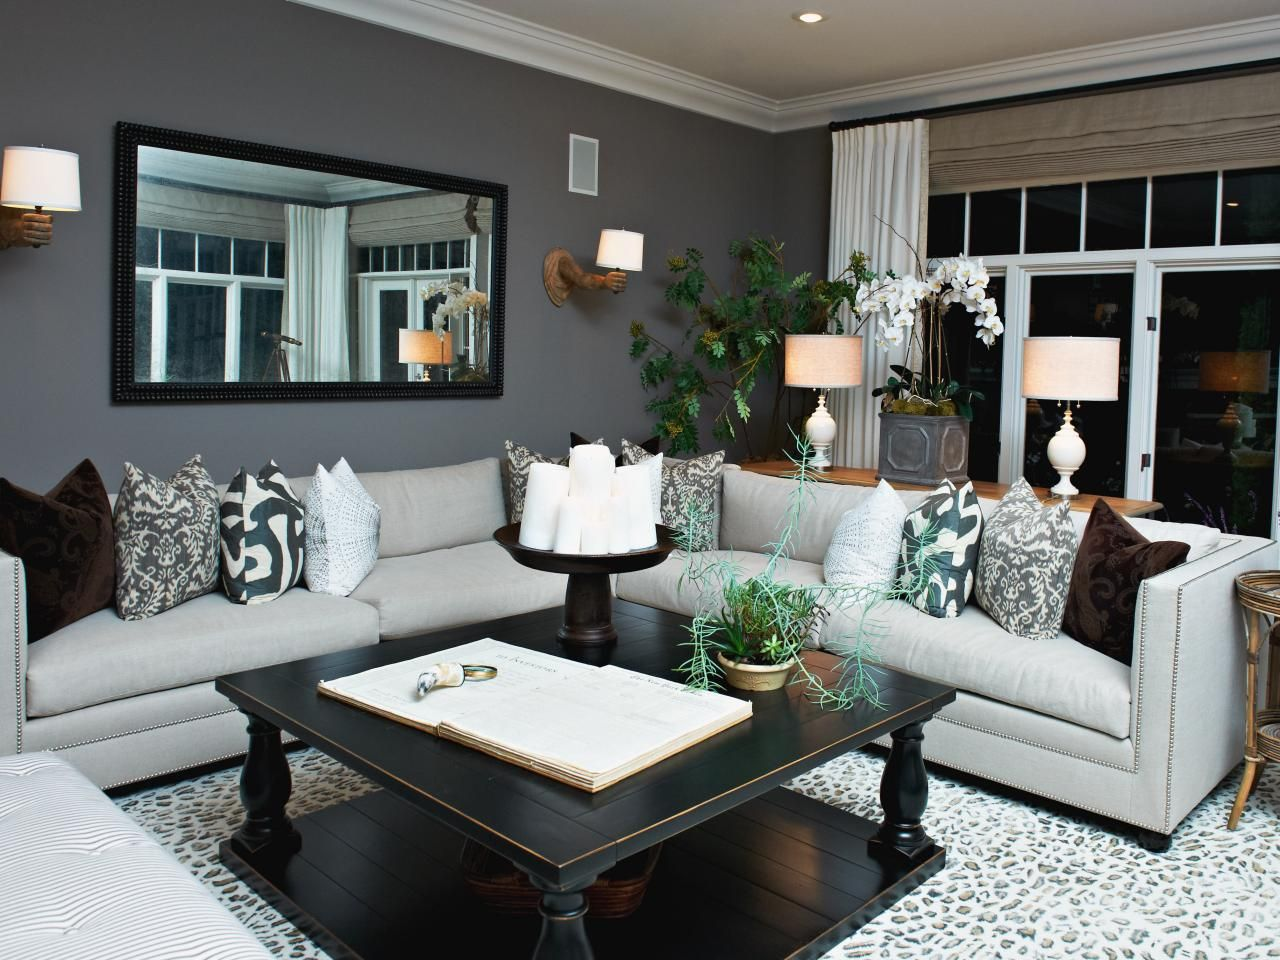 Living Room Gray Living Room Decorating Ideas 1000 ideas about gray living rooms on pinterest room decor top 50 gallery 2014 interior design styles and color schemes for home decorating